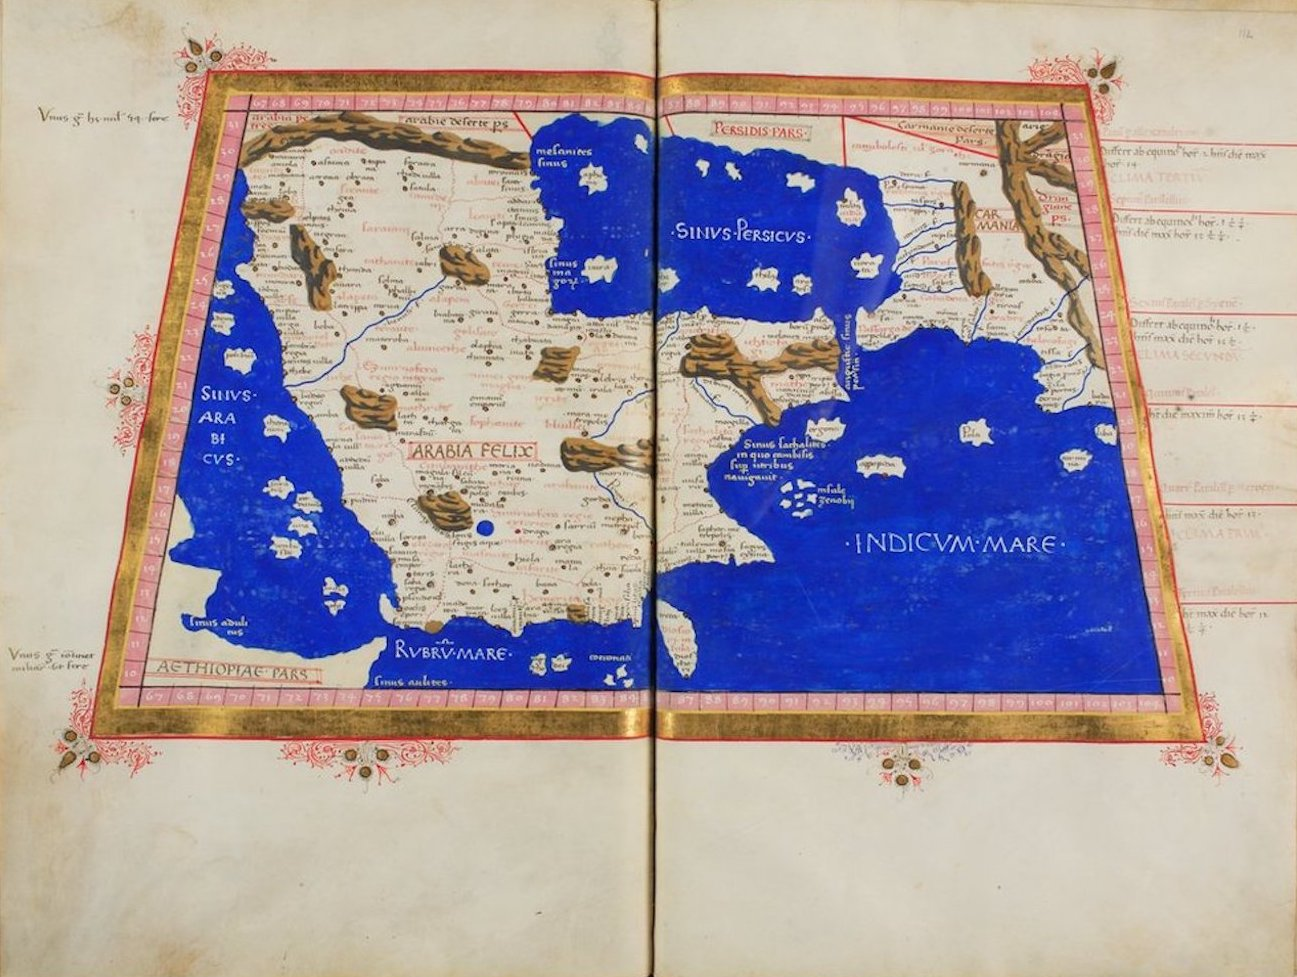 Ptolemy's Map of Asia - VI